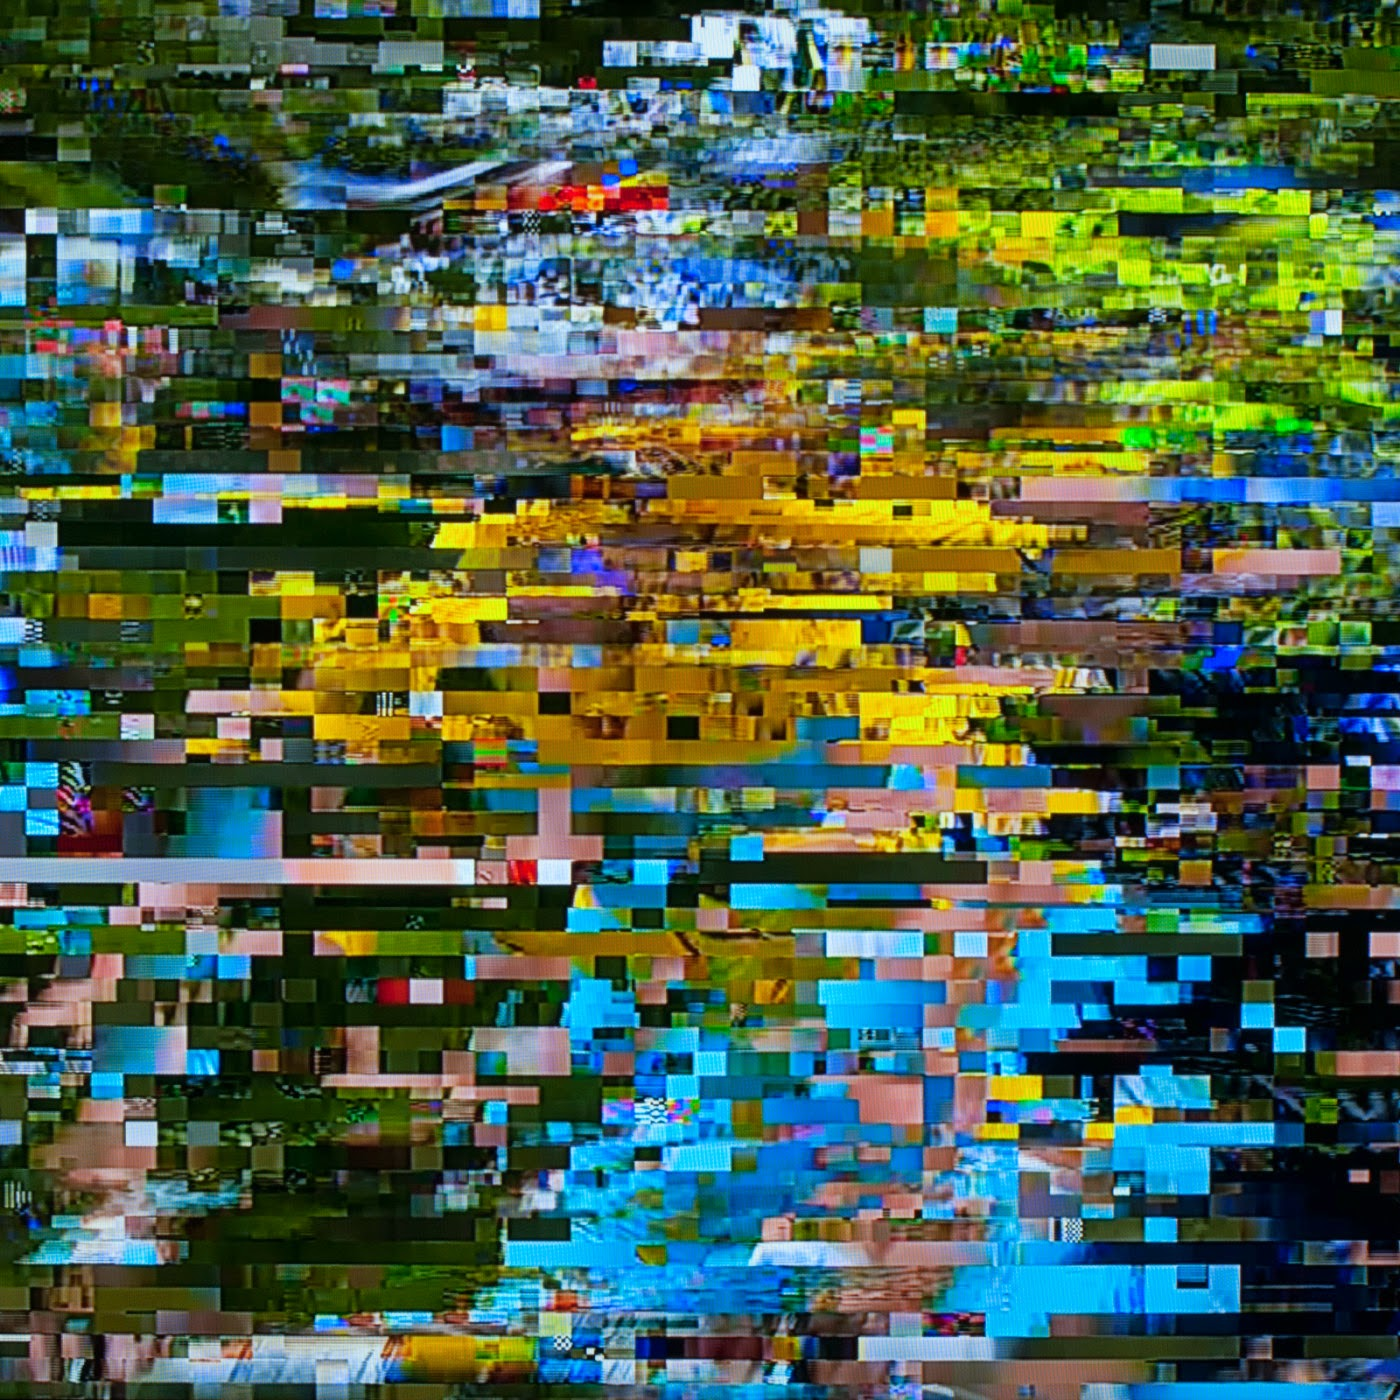 glitch, tim macauley, you won't see this at MoMA, le tour de france, 2014, abstract, abstraction, tv coverage, signal loss, noise to signal ratio, photographic art, graphic, digital, noise, signal, Vincenzo Nibali, yellow jersey